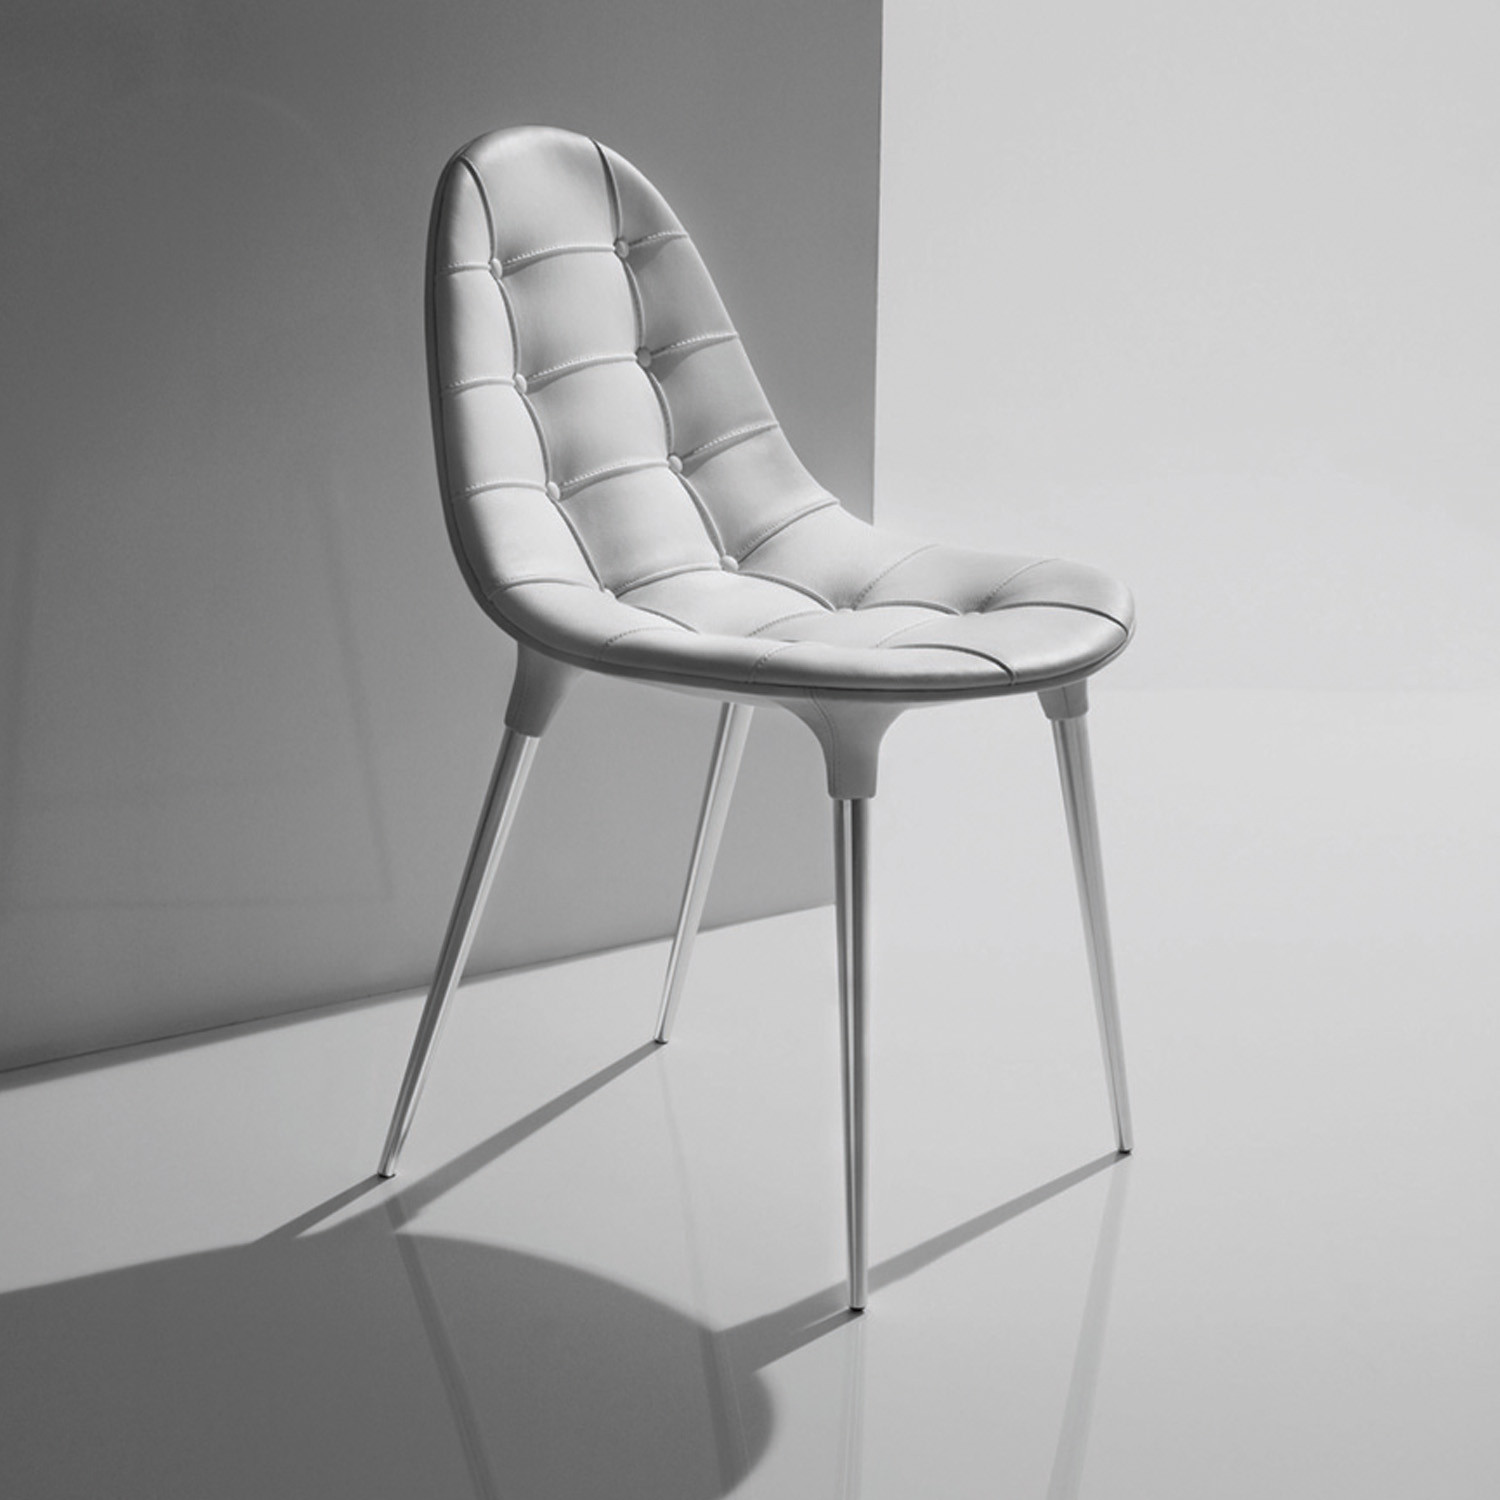 245 Caprice Chair White